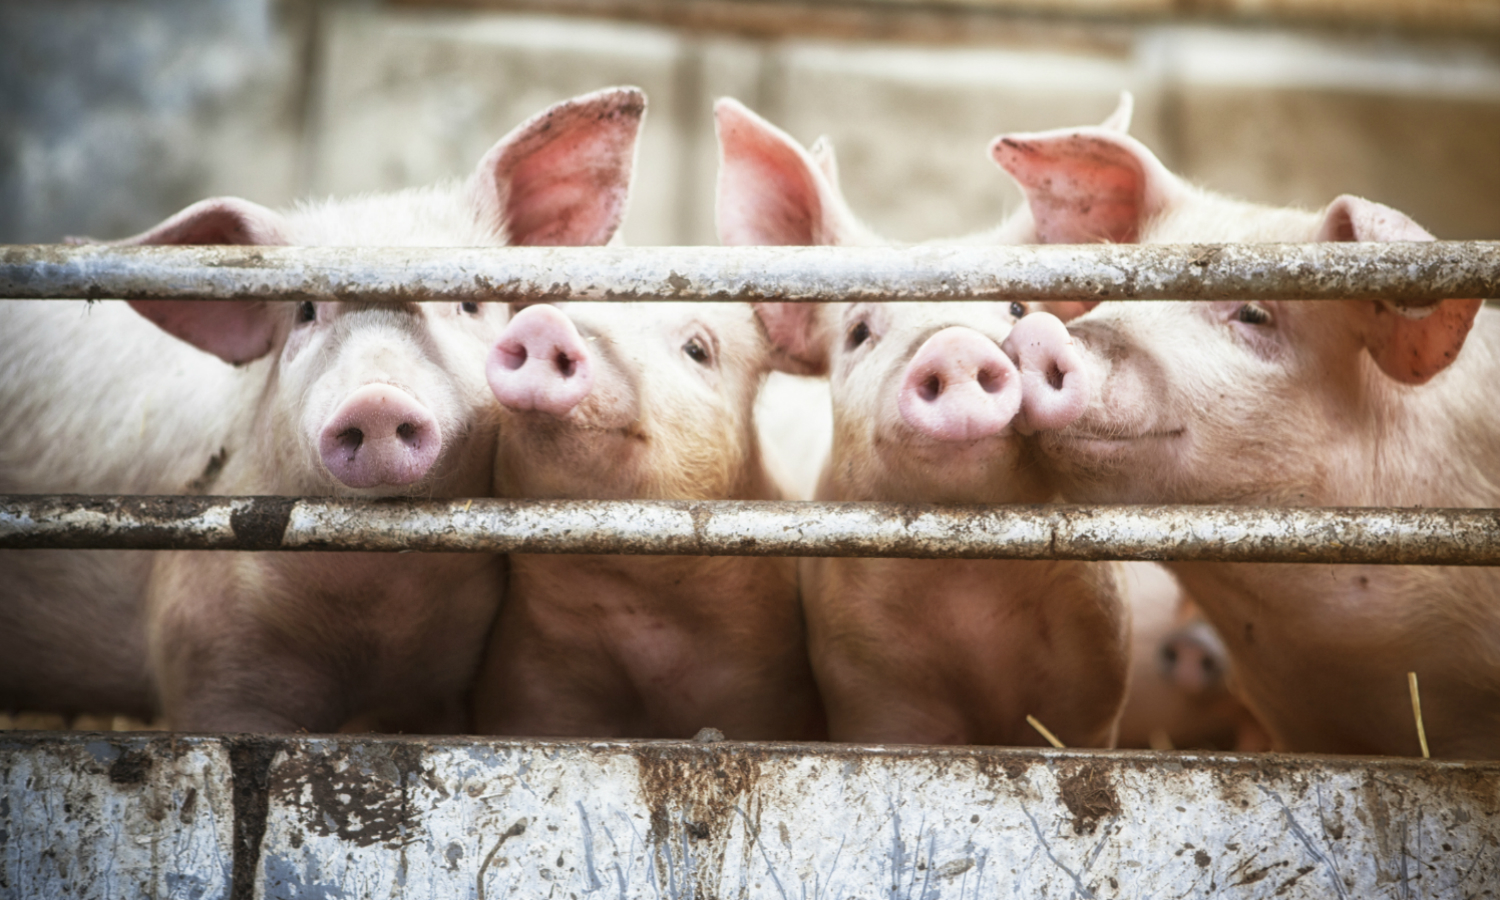 Half the World's Pigs Are Facing the Largest Animal Disease Outbreak